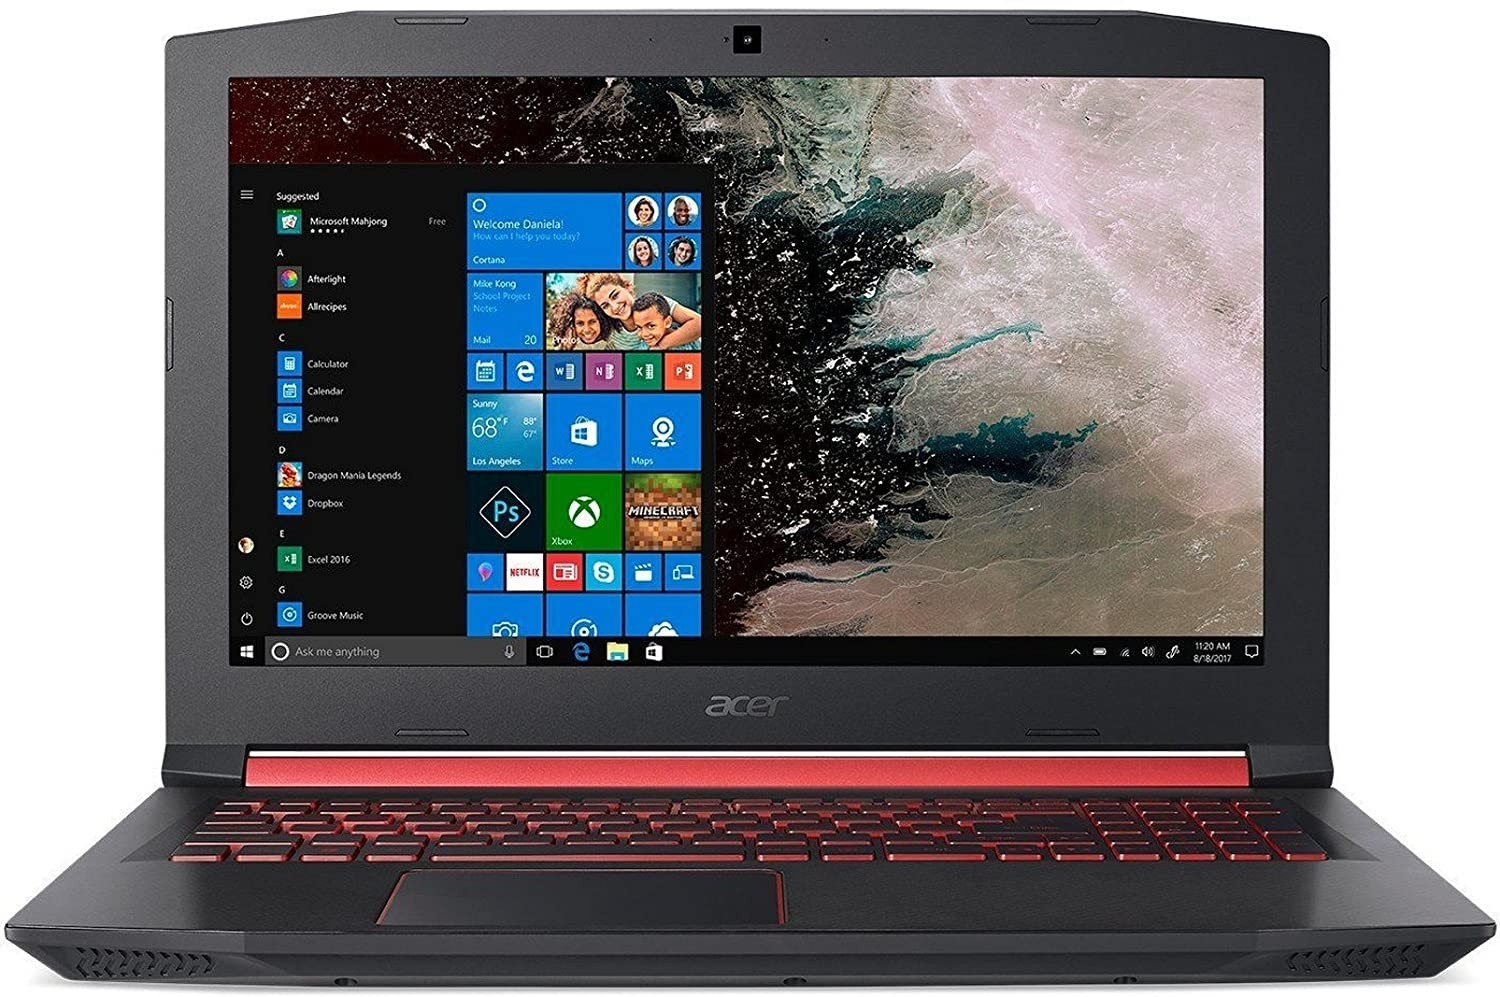 Refurbished laptops & desktops - ACER NITRO 5 AN515-52 CORE I7 8TH GEN 8750H PROCESSOR 15.6-INCH FHD GAMING LAPTOP (8GB RAM /128 GB SSD WITH 1TB HDD/WINDOWS 10/NVIDIA GTX GRAPHICS 1050TI 4GB GDDR5/BLACK/2.7KG)